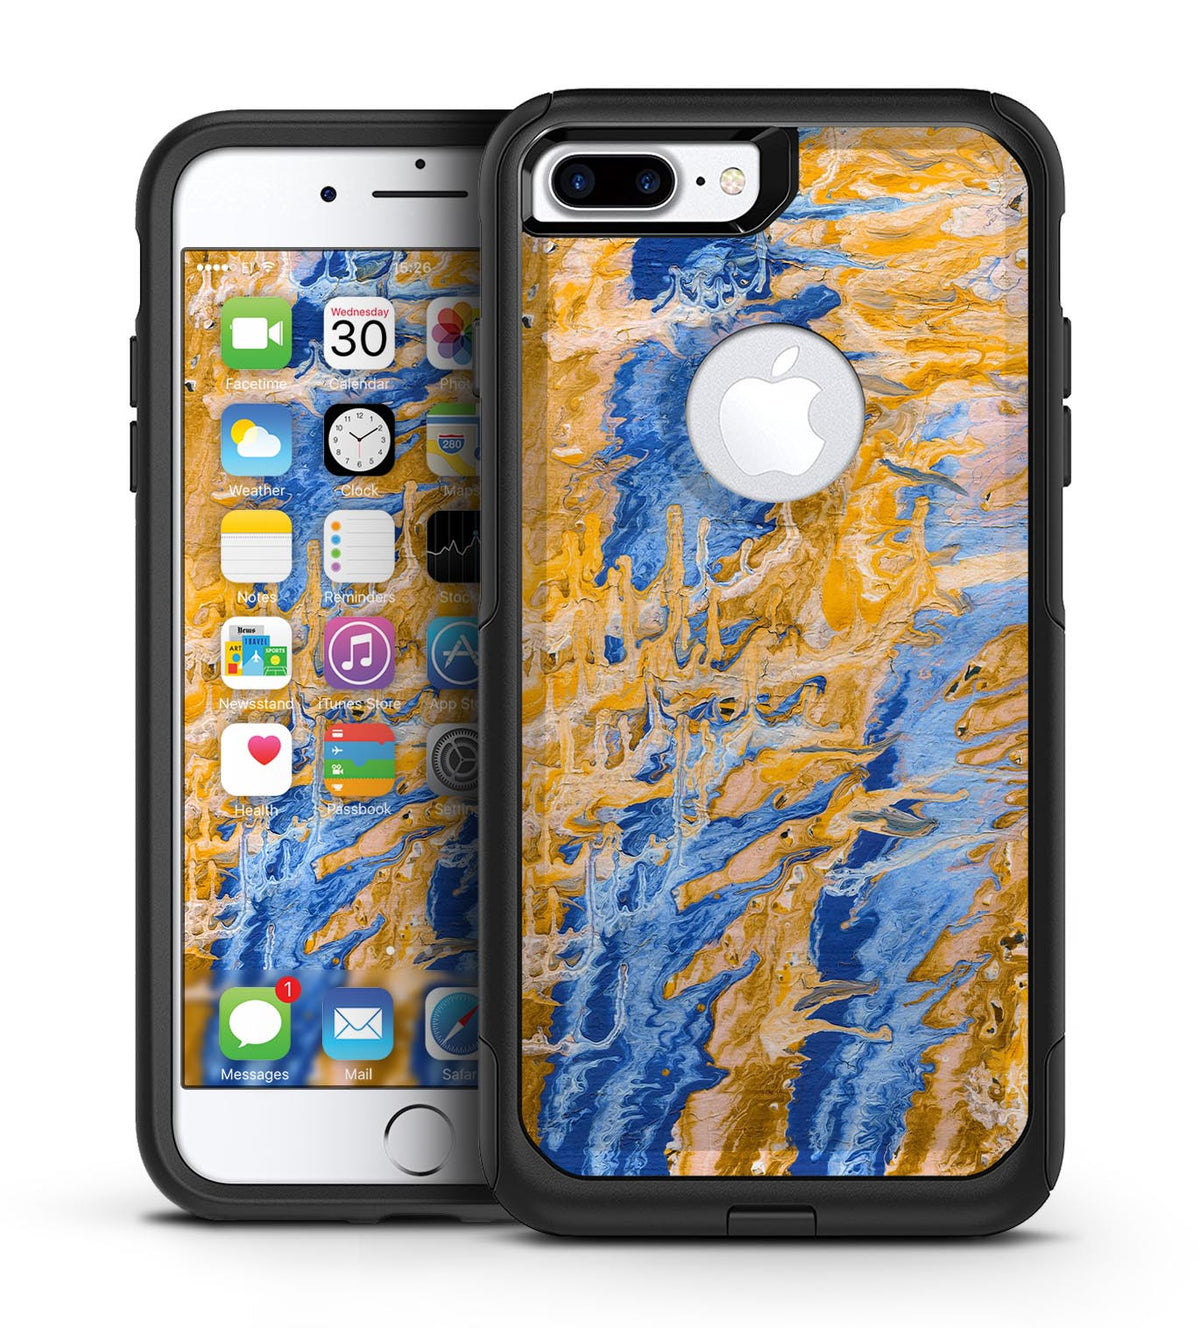 100% authentic 8ae23 710fa Abstract Wet Paint Blue and Gold Tilt - iPhone 7 or 7 Plus Commuter Case  Skin Kit